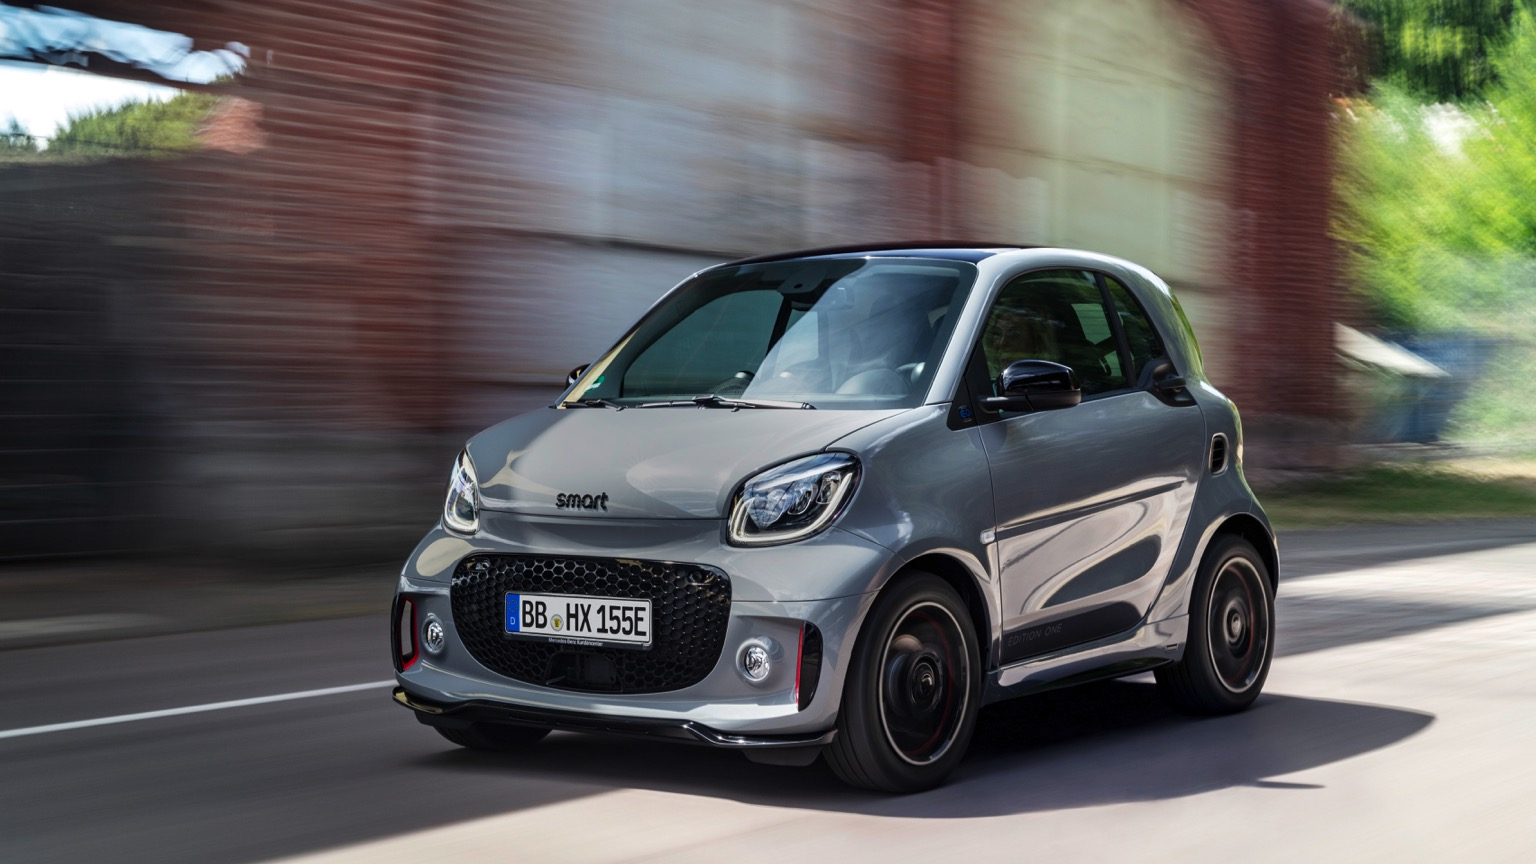 Smart EQ fortwo coupe (2020)